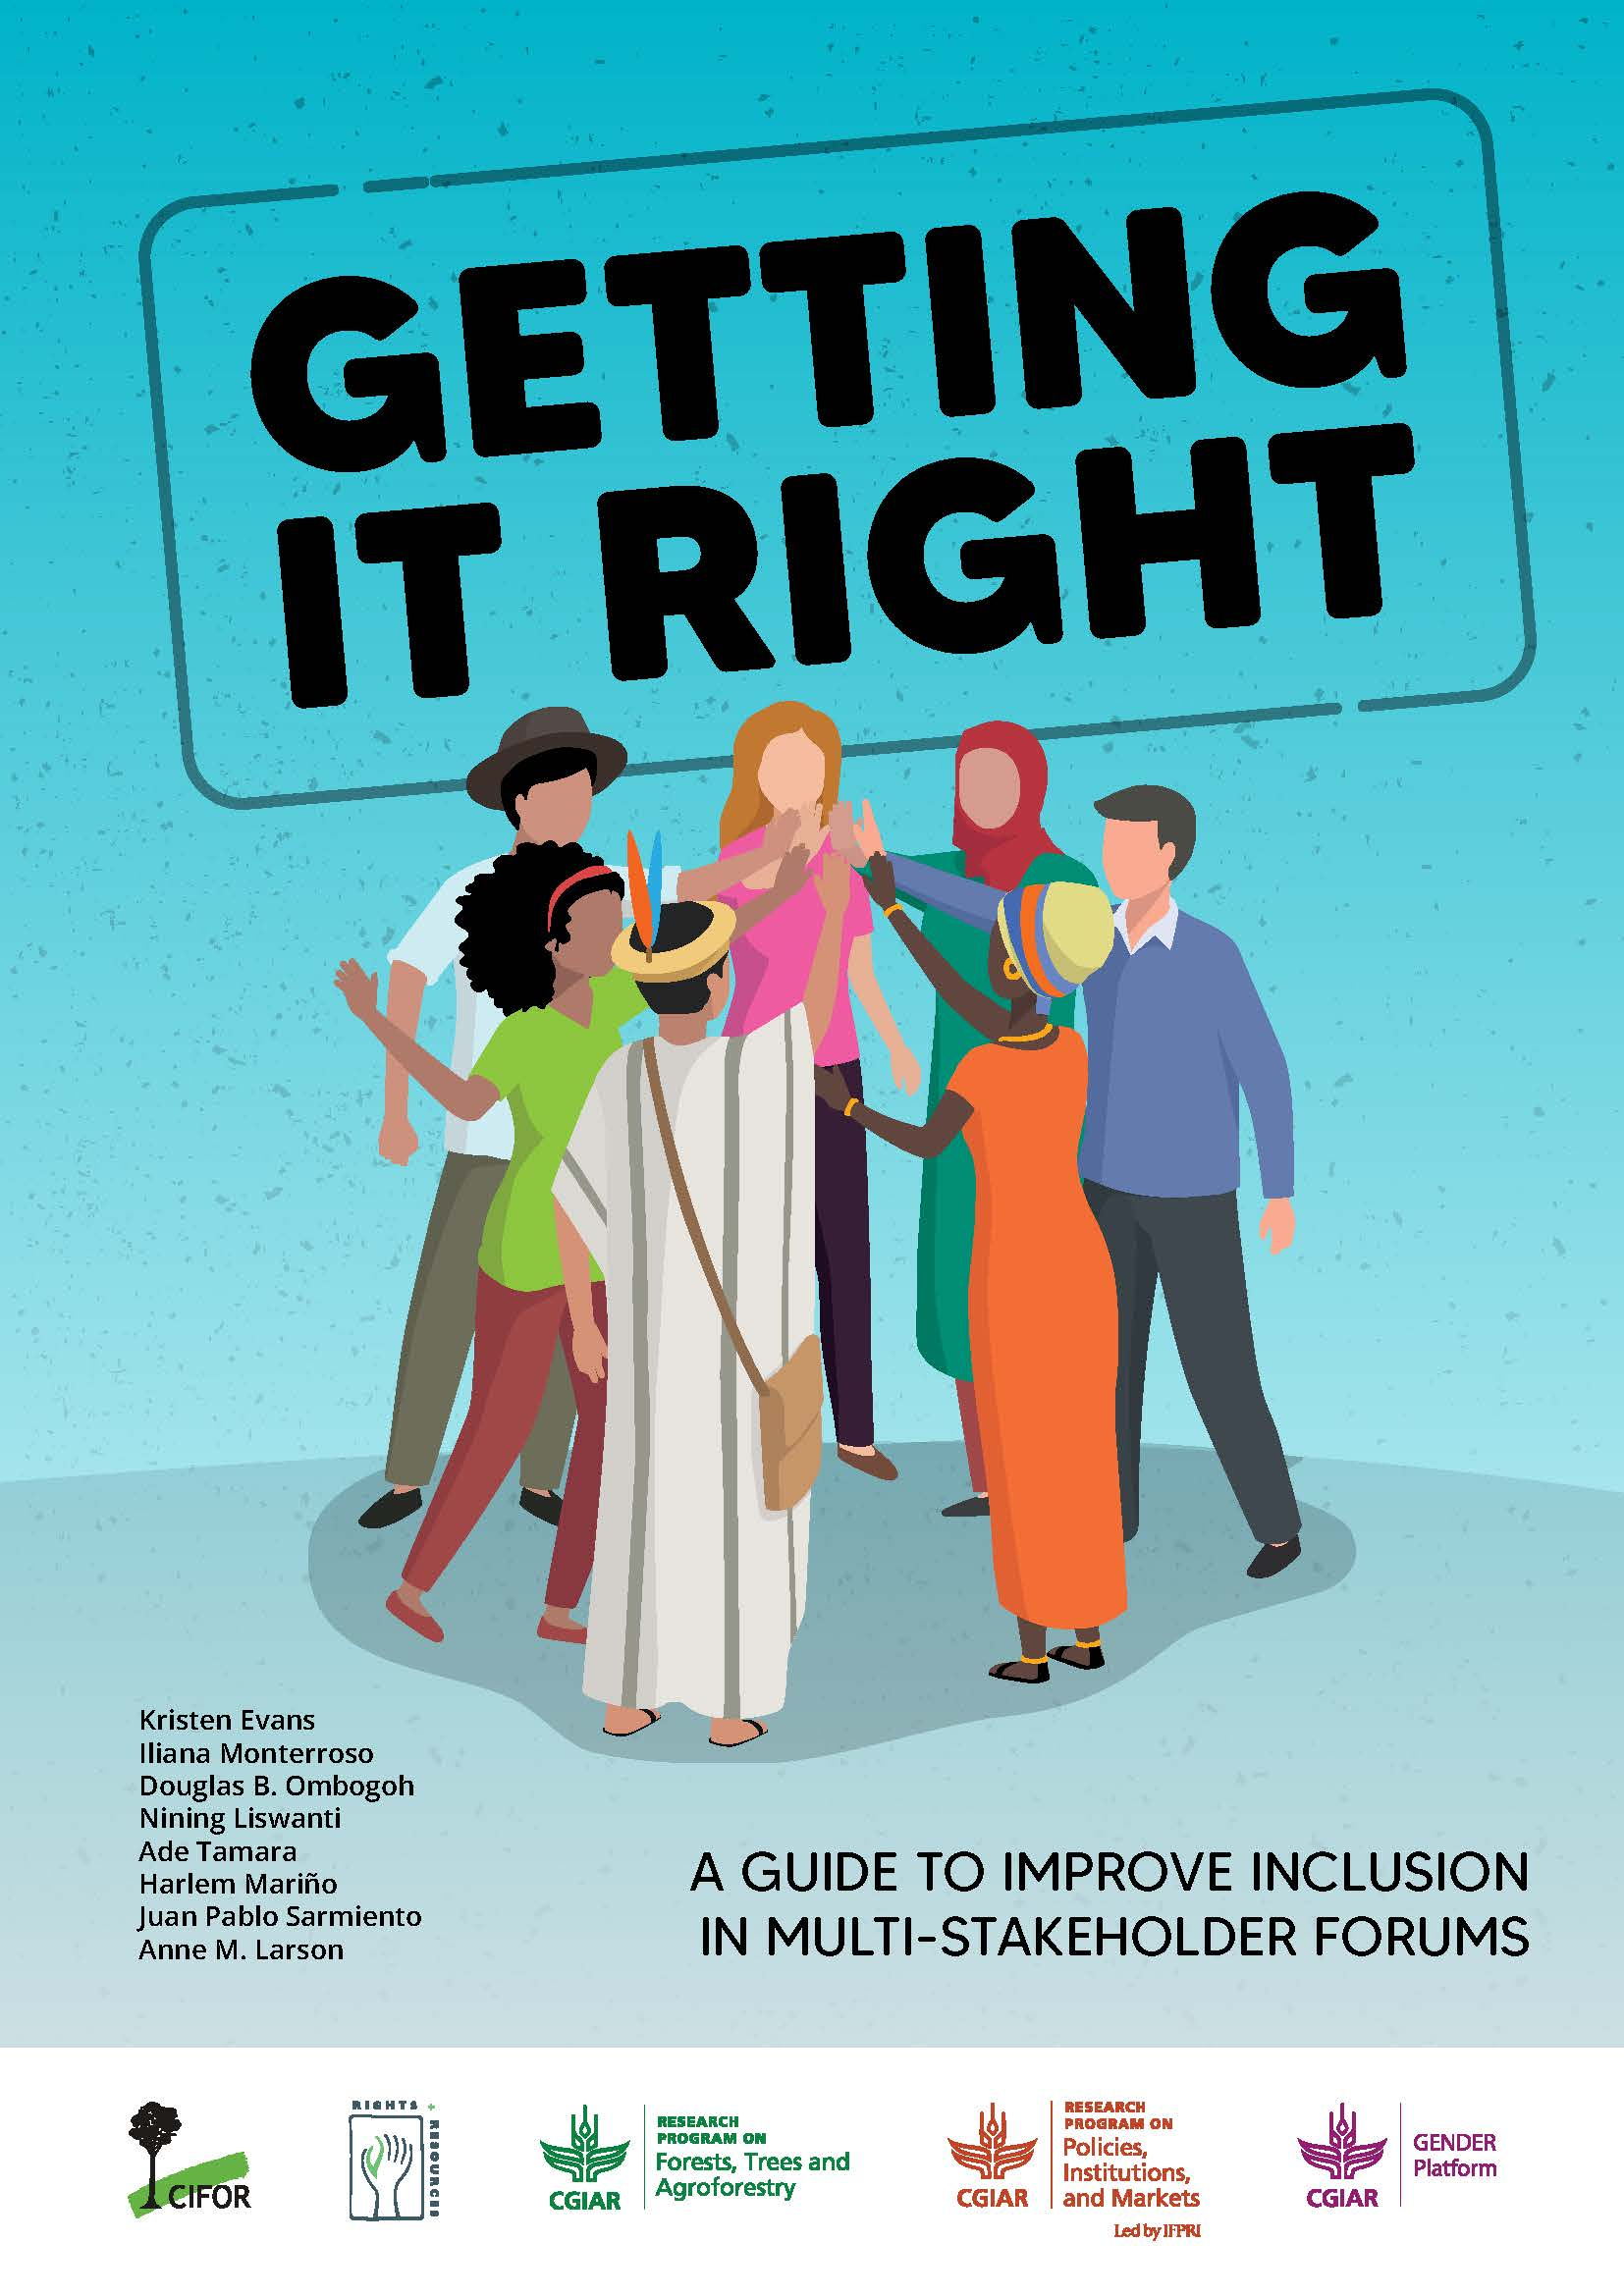 Getting it right, a guide to improve inclusion in multistakeholder forums